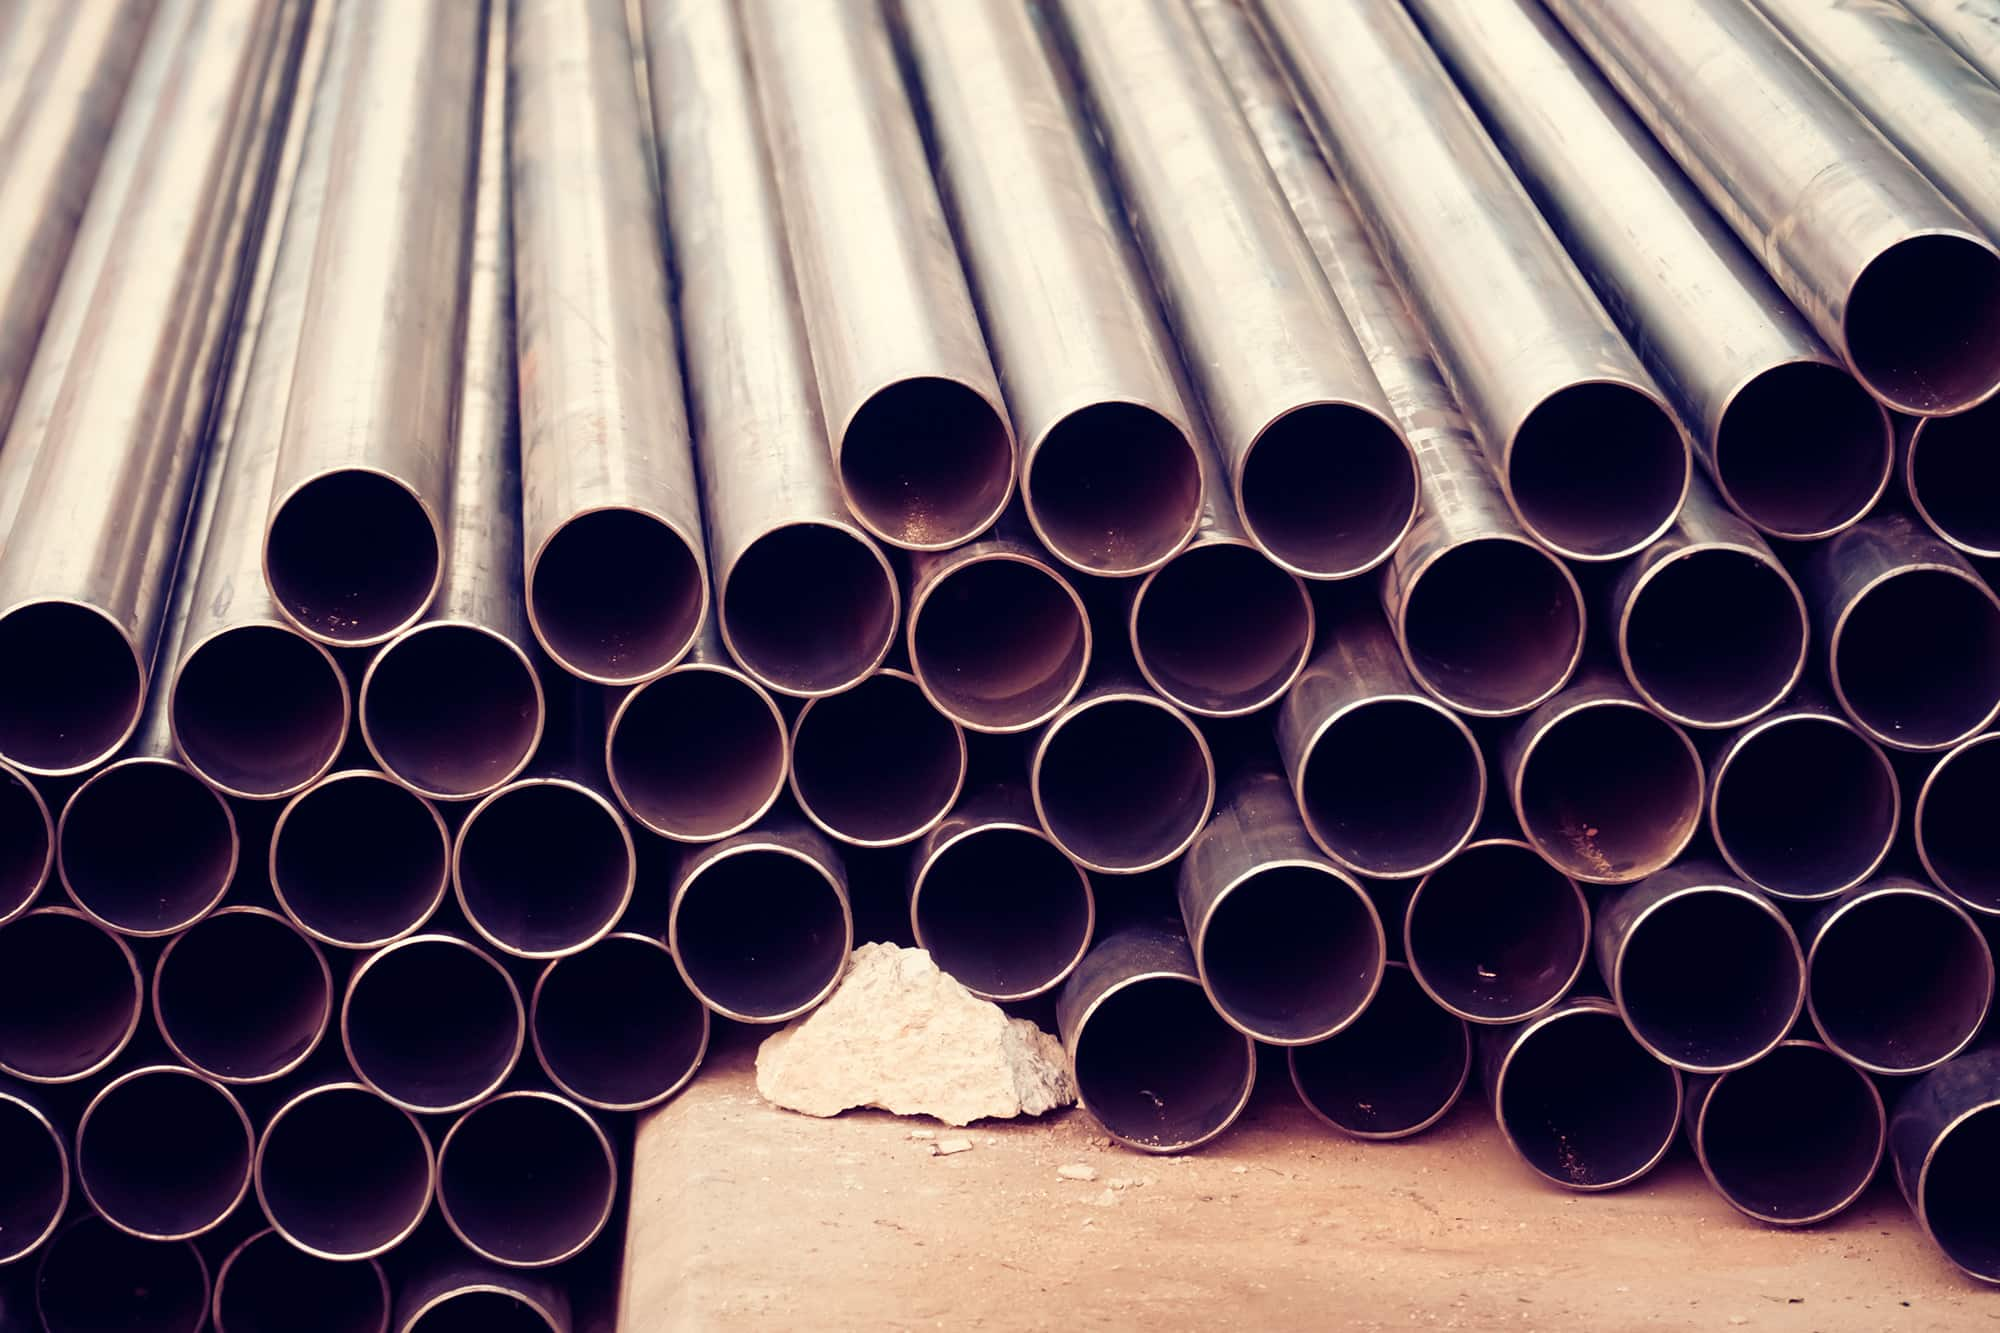 Stainless Steel Pipes/Tubes Manufacturers in India, SS Pipe Supplier,  Dealers, Wholesalers in India | Carbon Steel Pipes, Alloy, Duplex And Super  Duplex Flanges